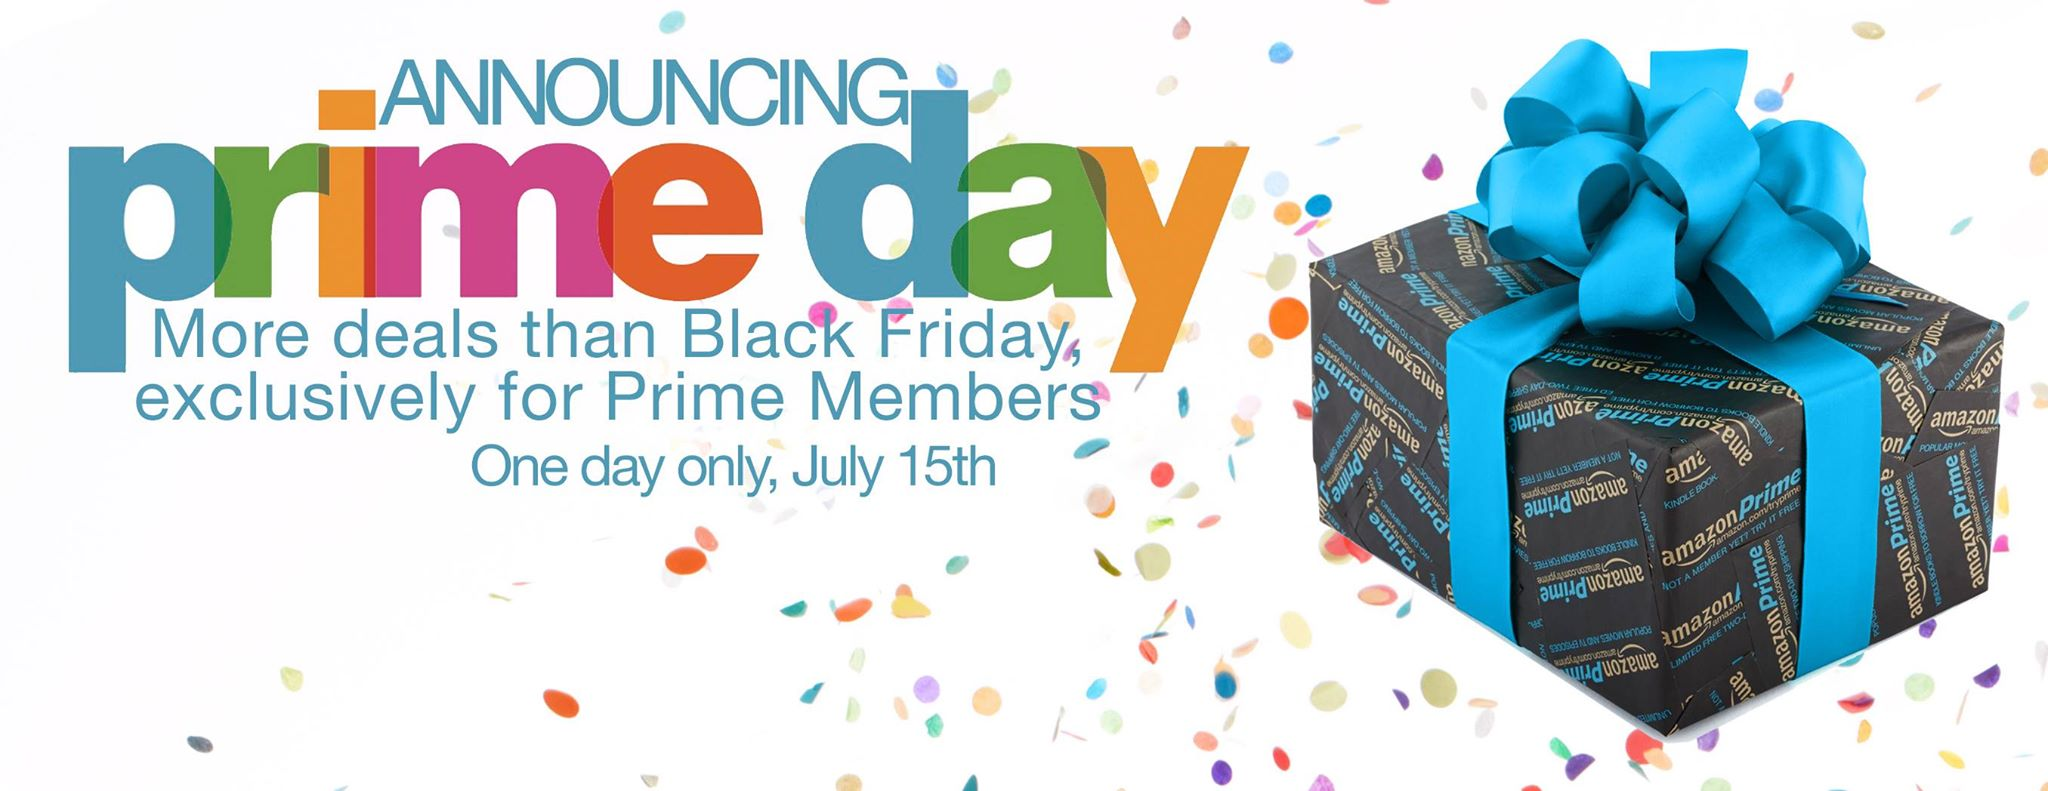 Amazon's Prime Day logo